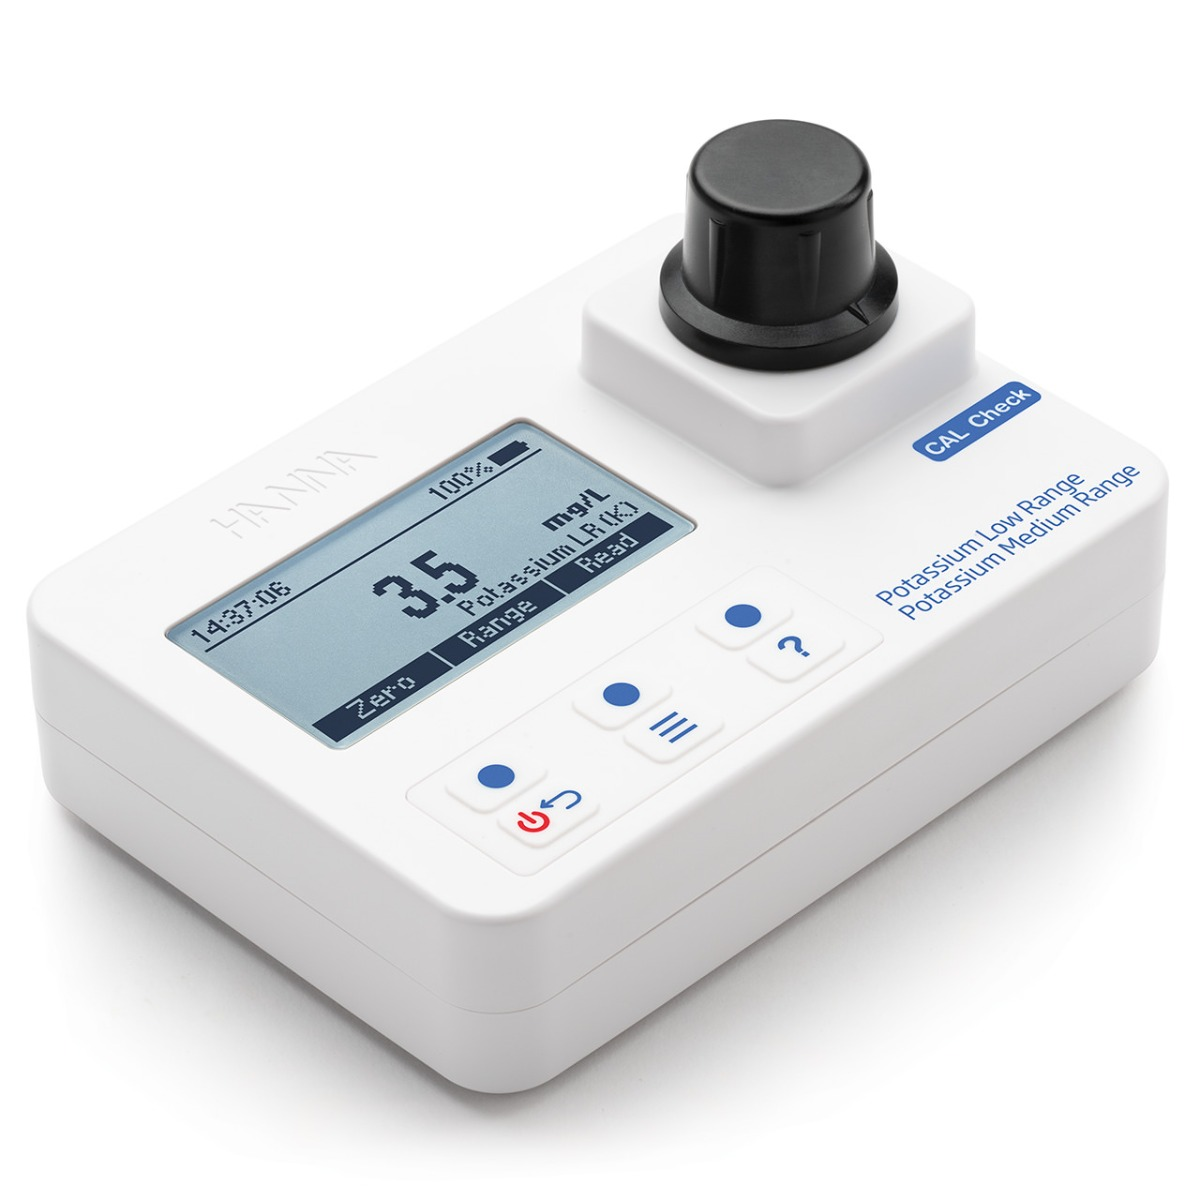 Potassium Low and Medium-Range Portable Photometer with CAL Check – HI97750